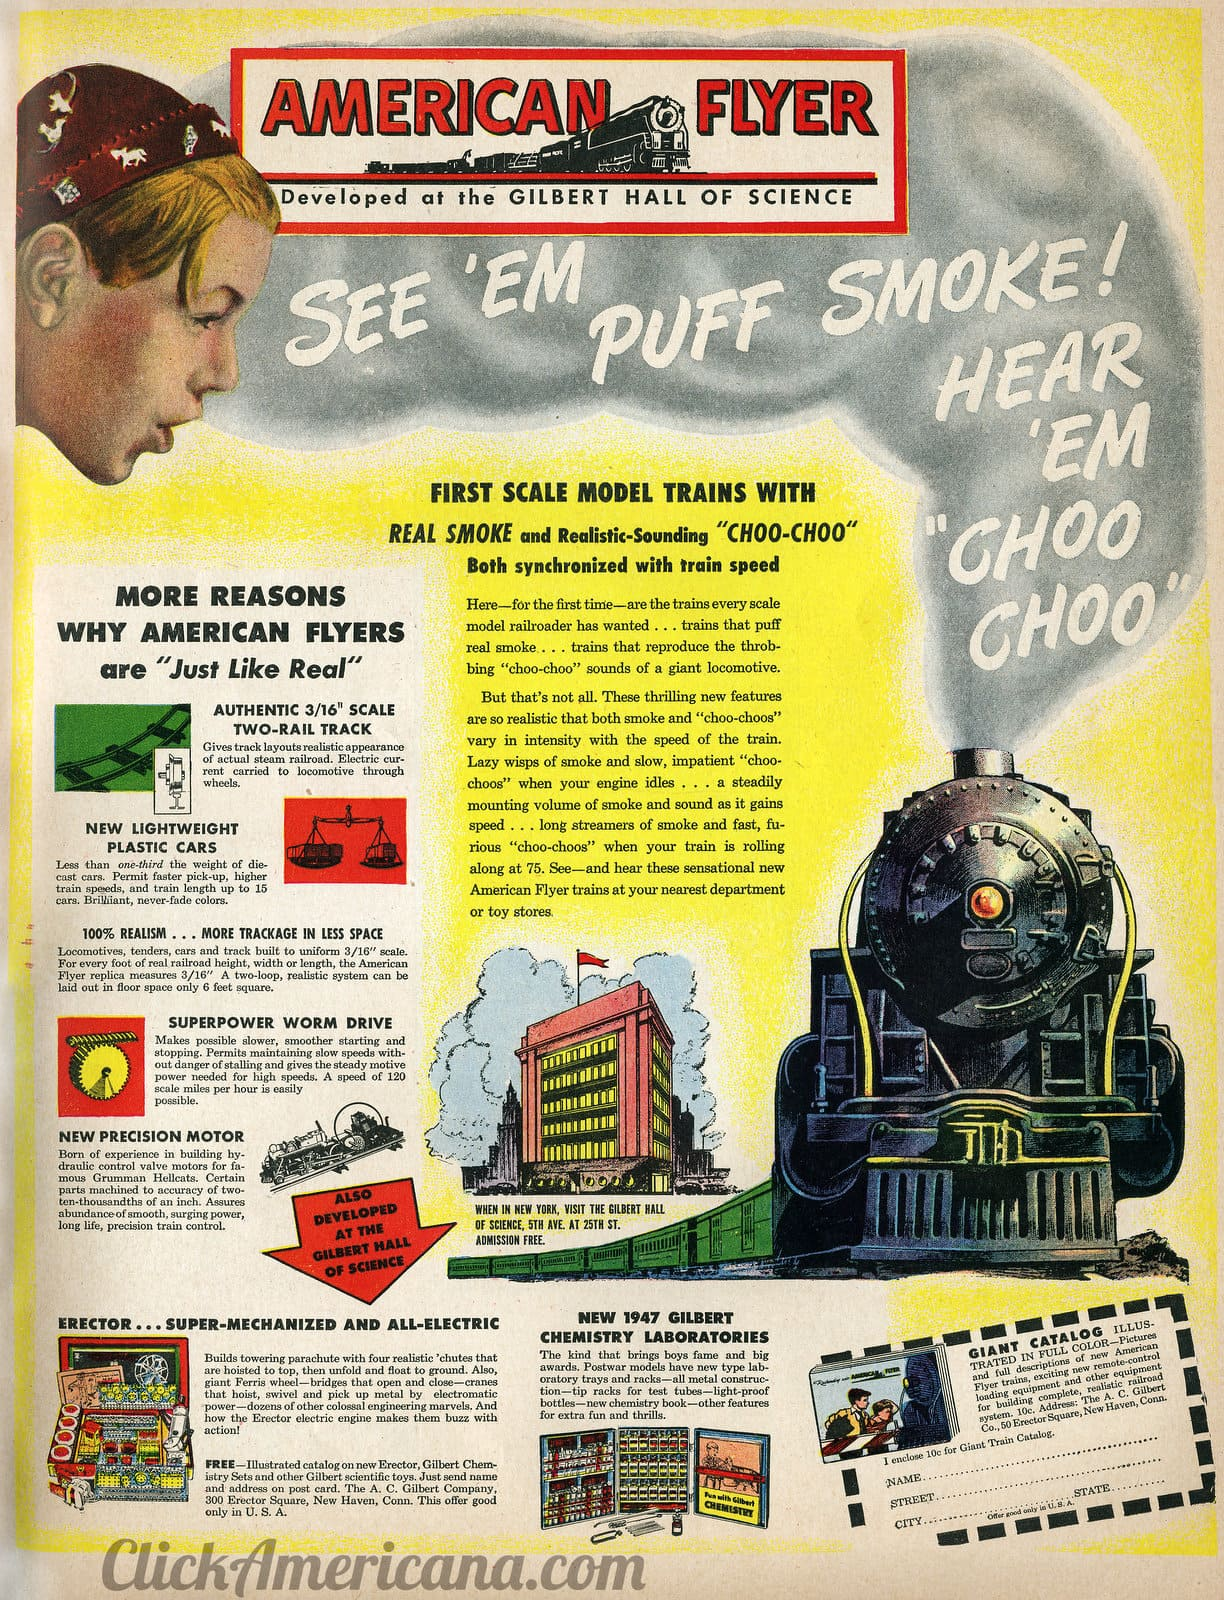 American Flyer model trains with smoke (1946)